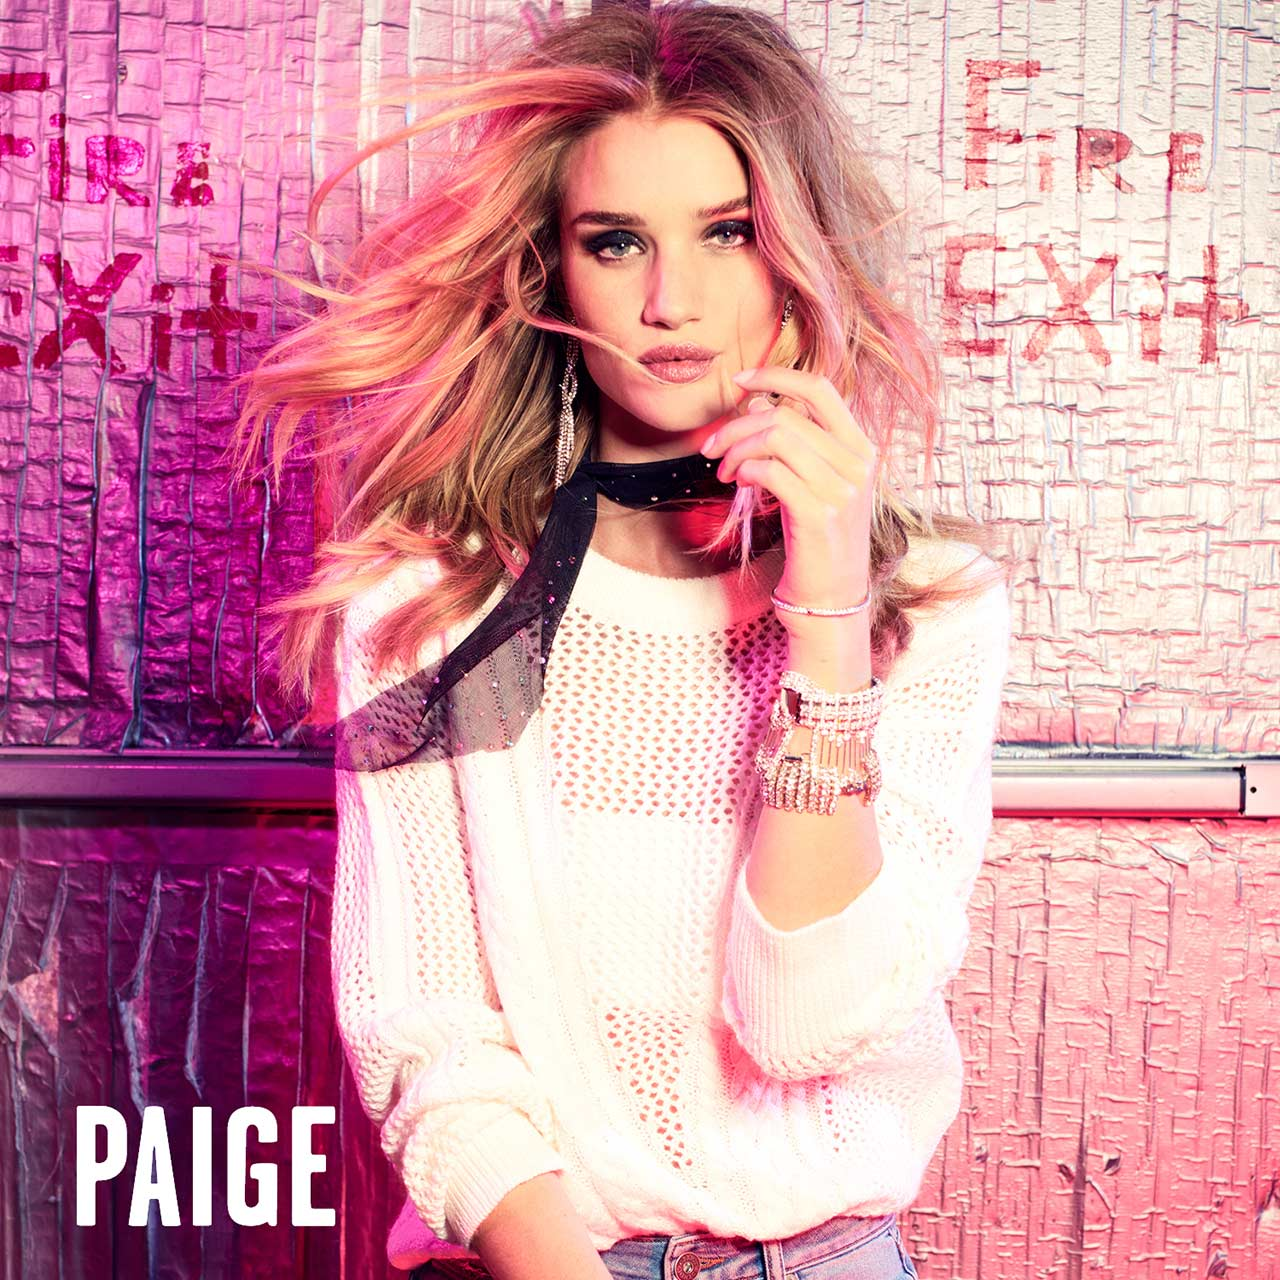 Paige-Rosie-Huntington-Whiteley-Fall-16-Insta-Images3